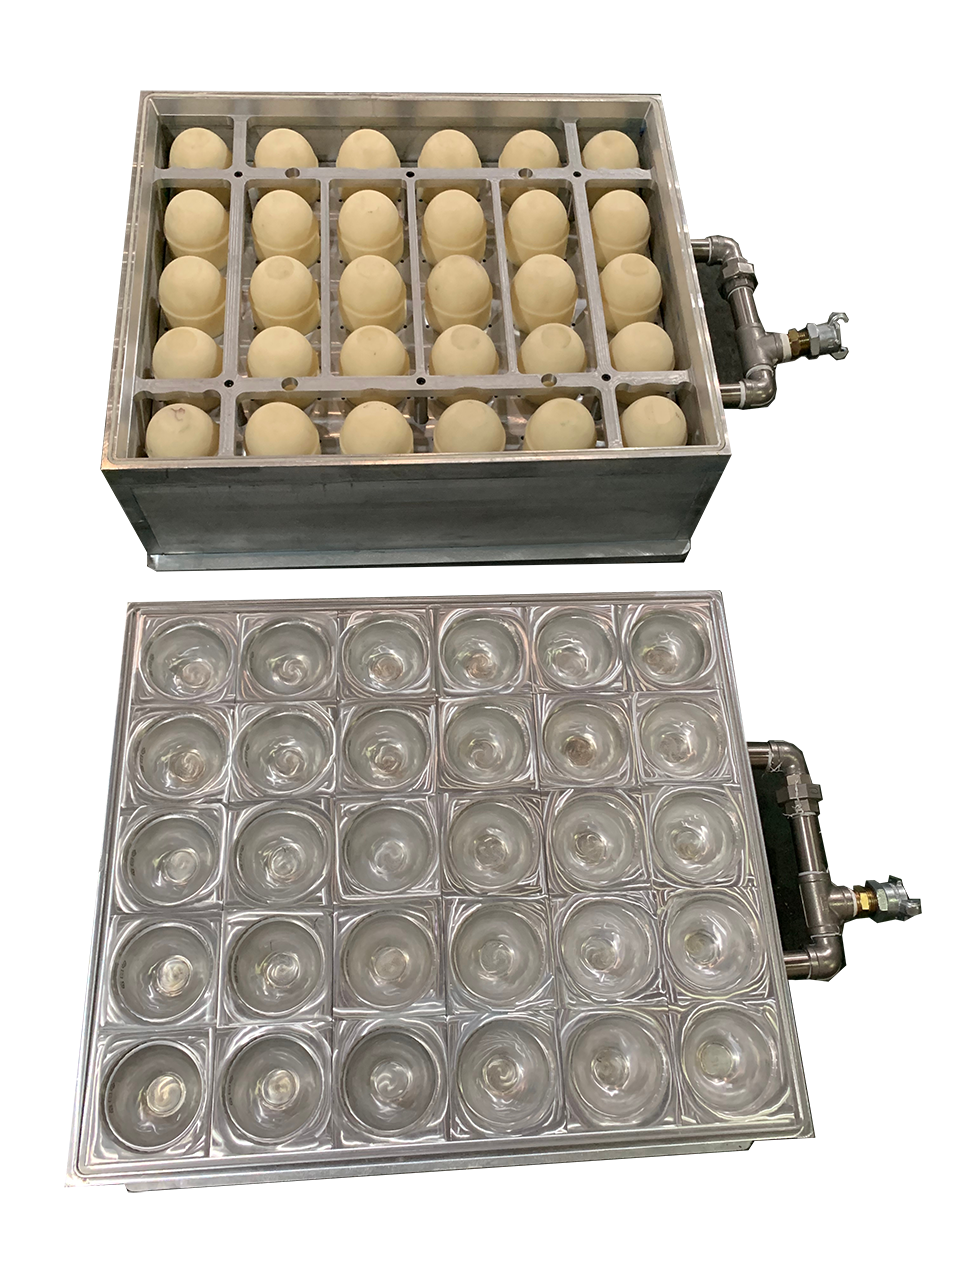 Positive and negative pressure thermoforming mold